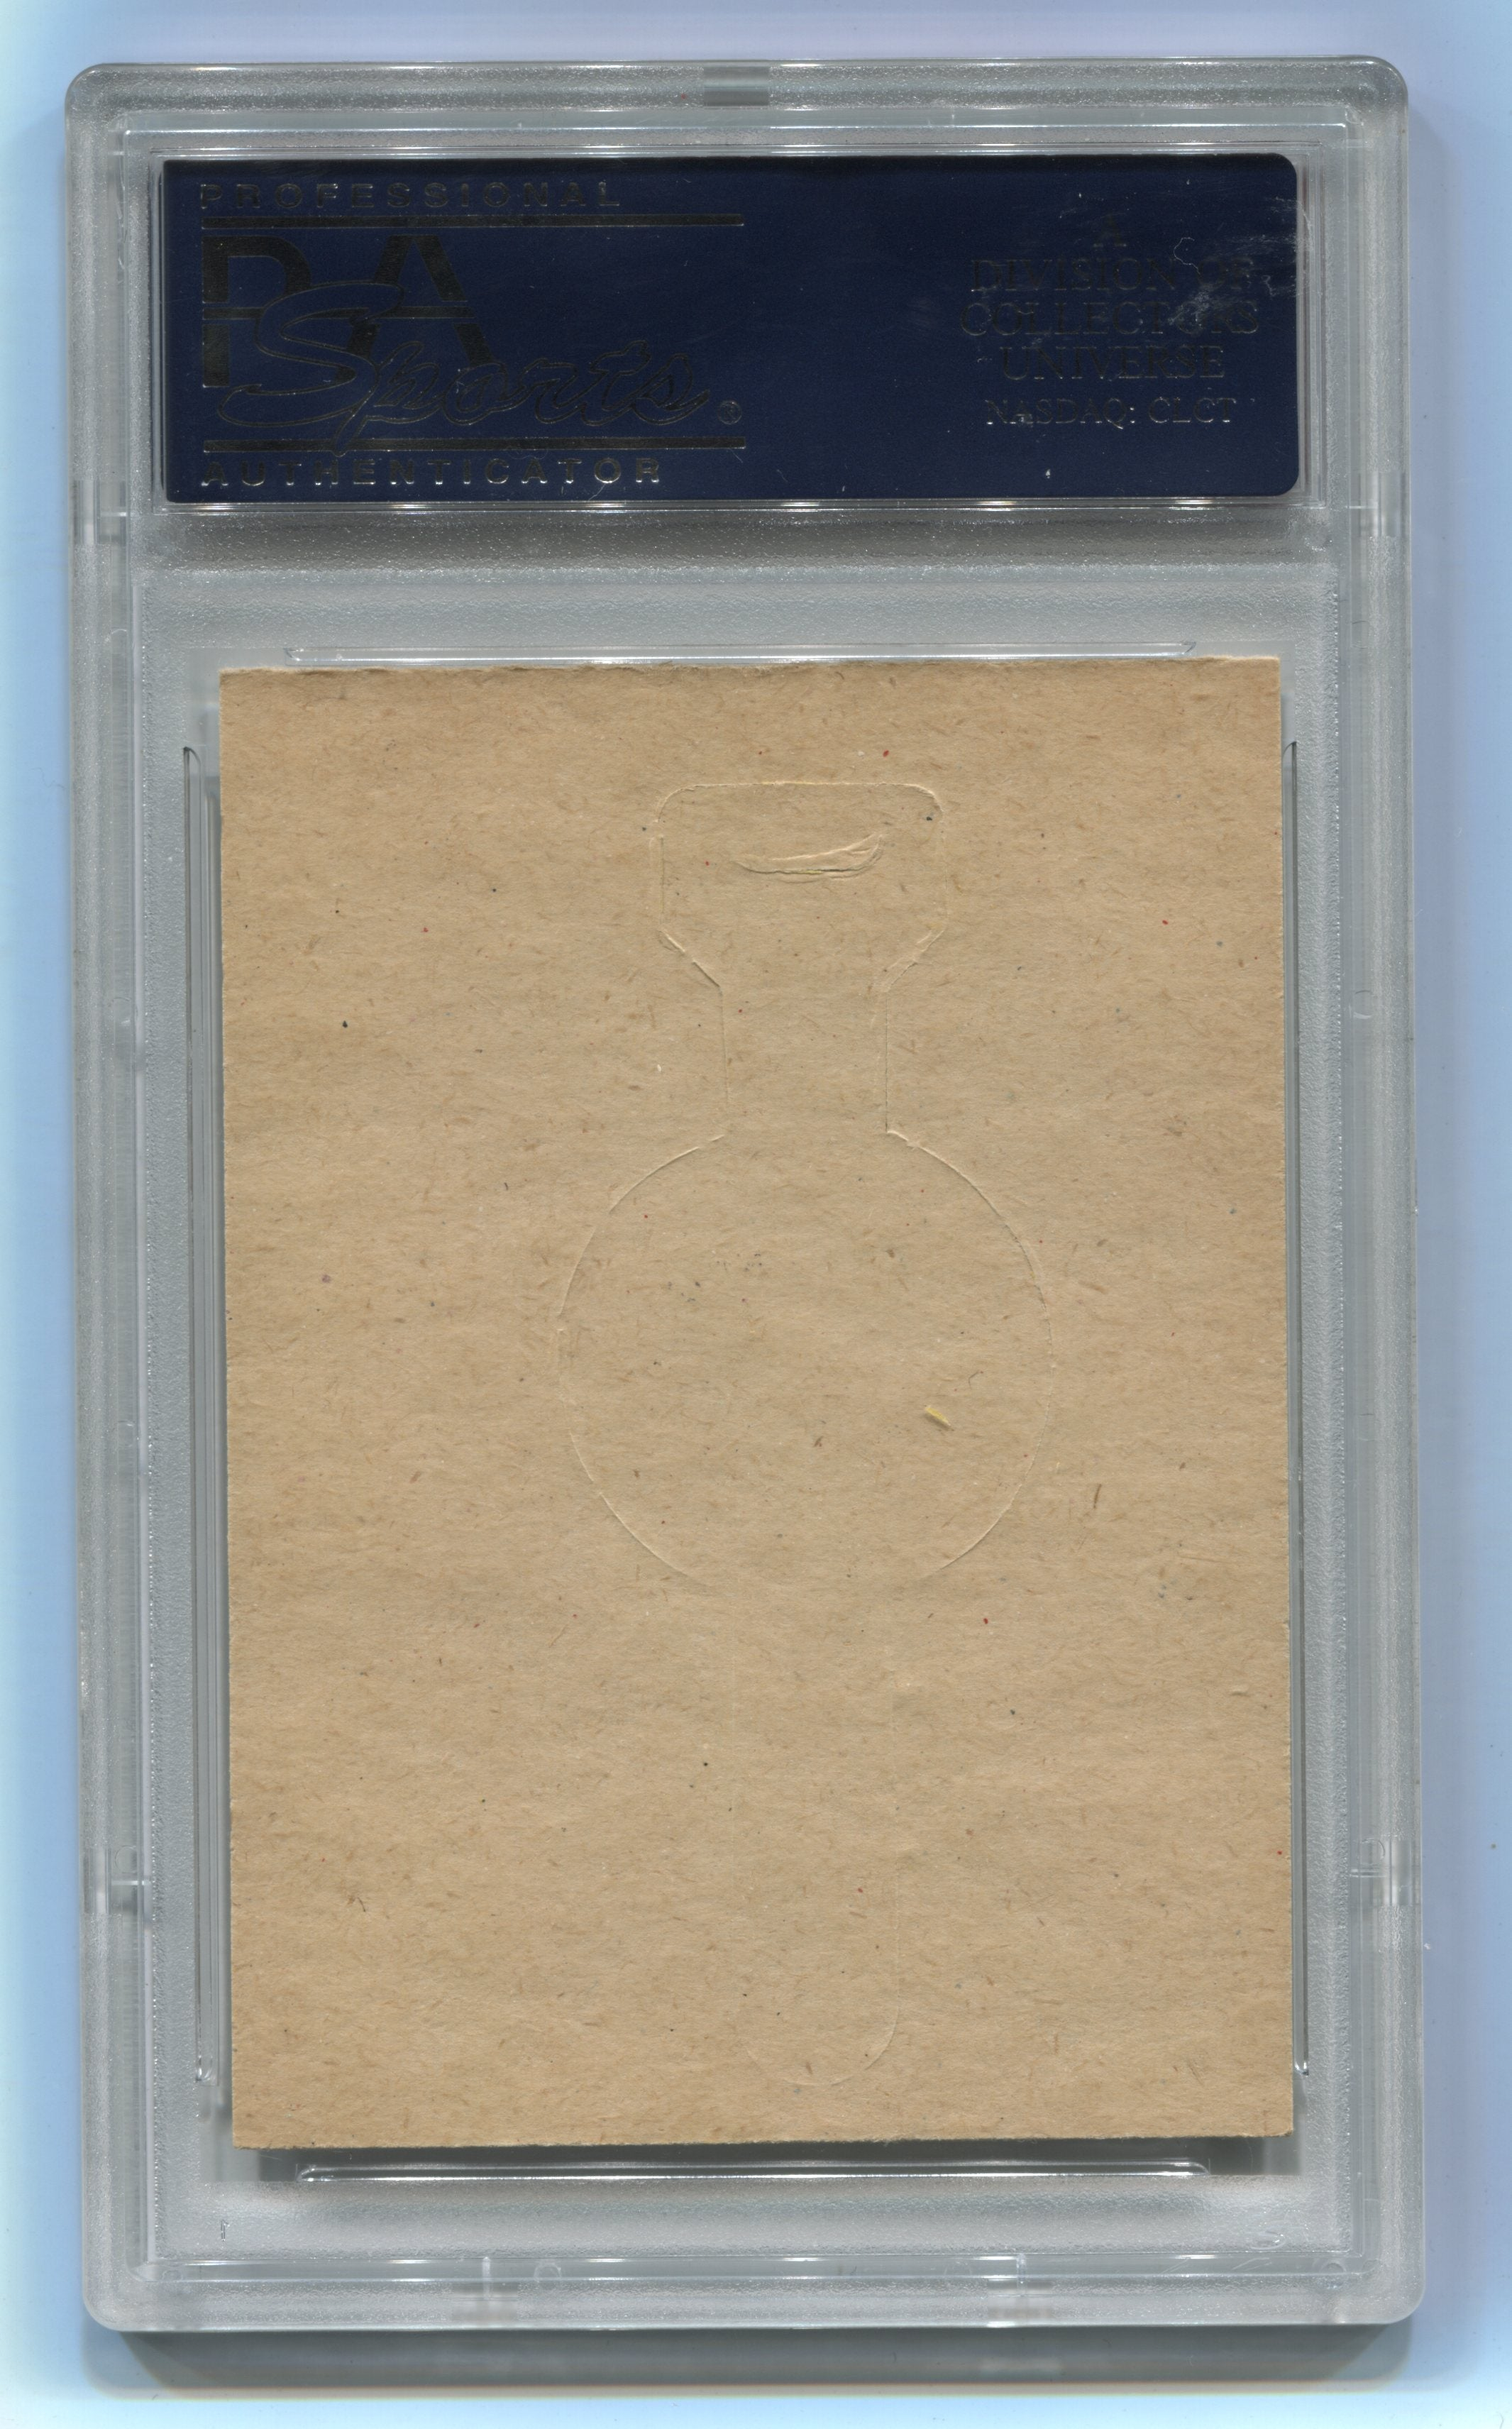 1973-74 O-Pee-Chee Rings #3 Toronto Maple Leafs PSA 9 | Eastridge Sports Cards